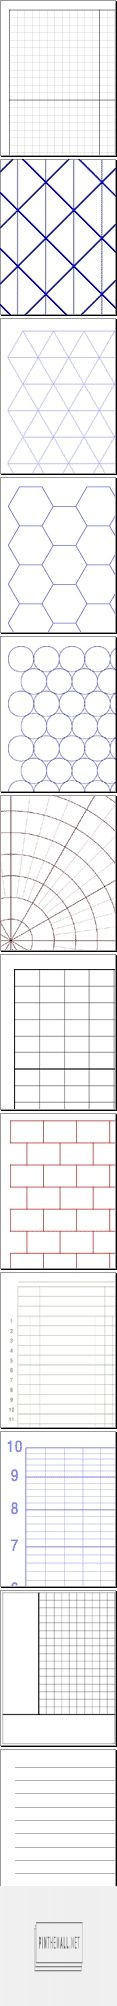 Best 25+ Grid paper printable ideas on Pinterest Bullet journal - graph paper with axis